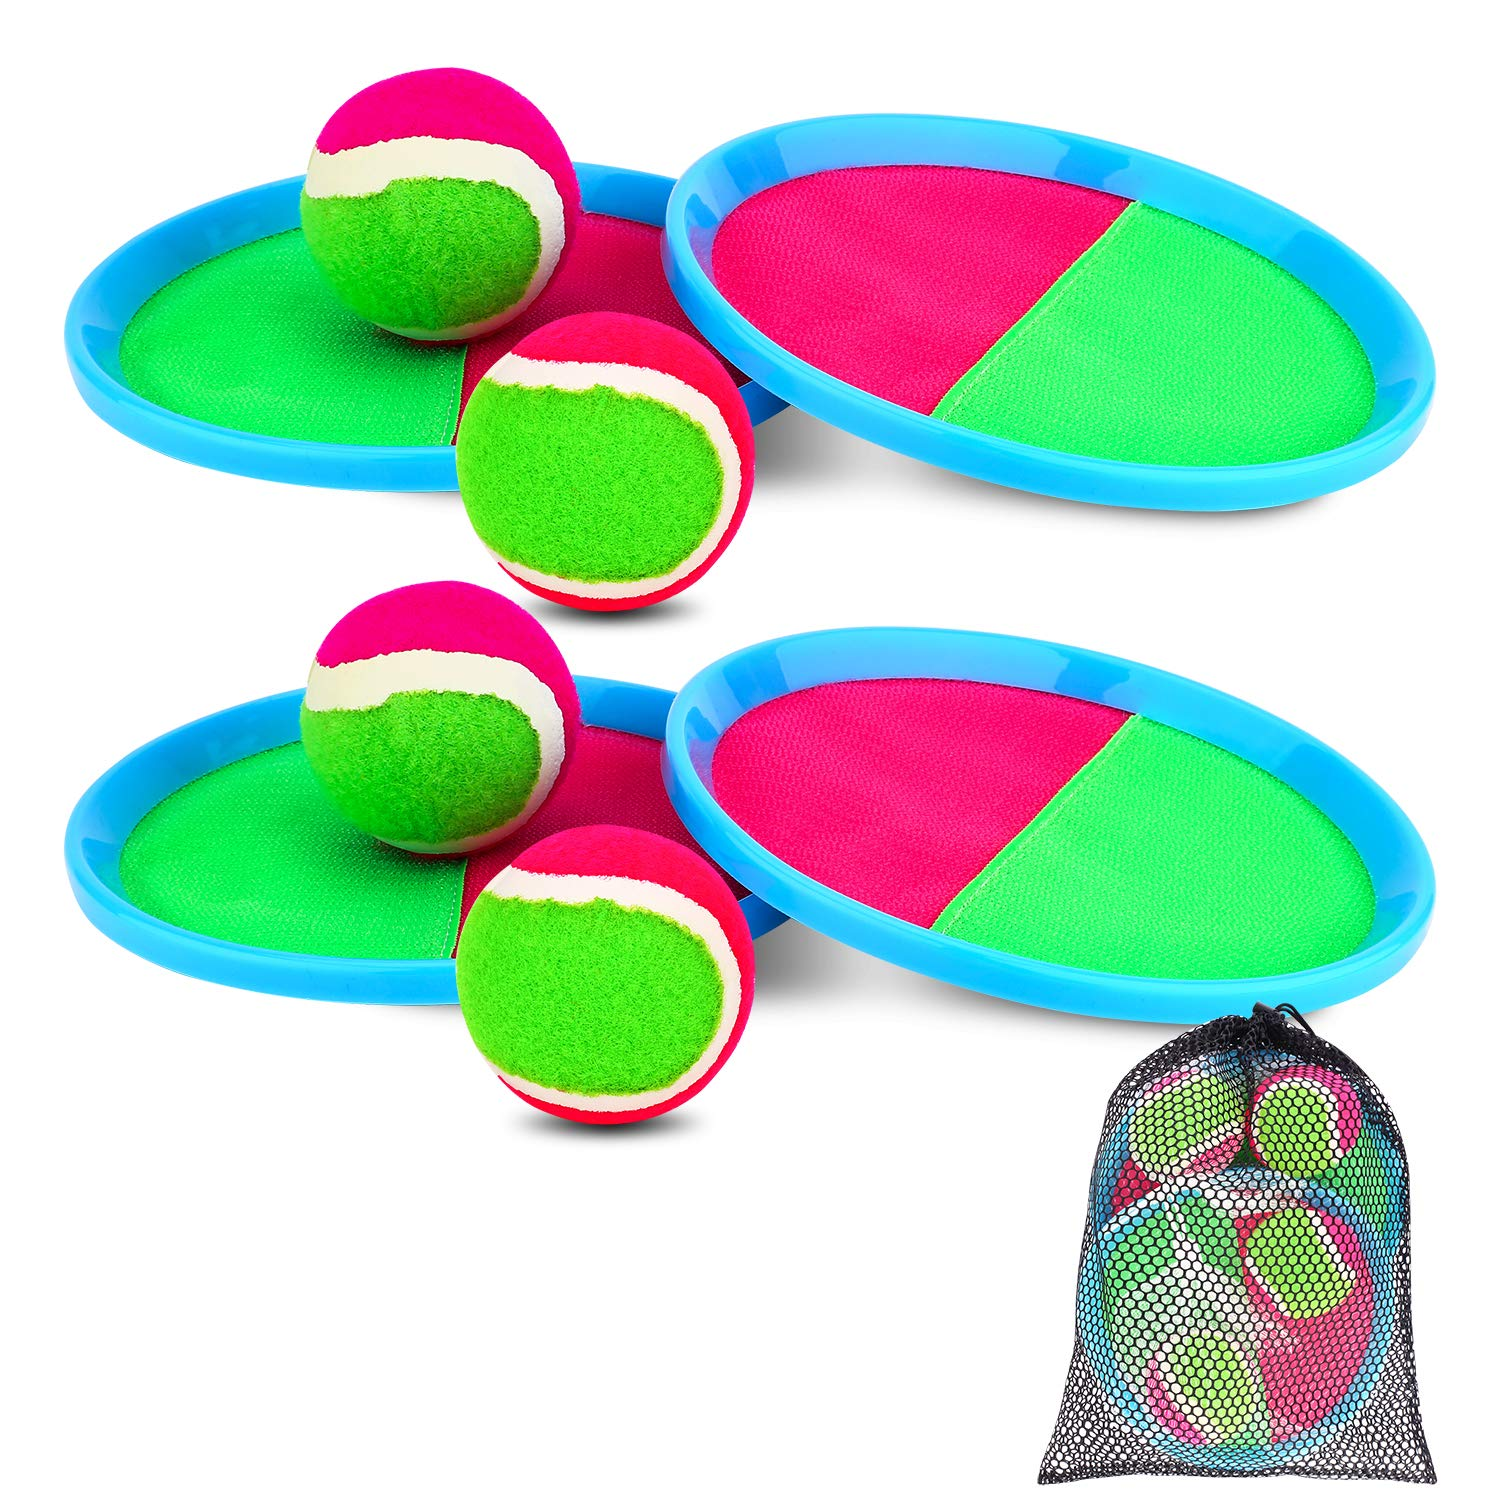 Ayeboovi Paddle Toss and Catch Ball Set for Kids- Self Stick Paddle Game with 4 Paddles, 4 Balls and 1 Storage Bag for Children